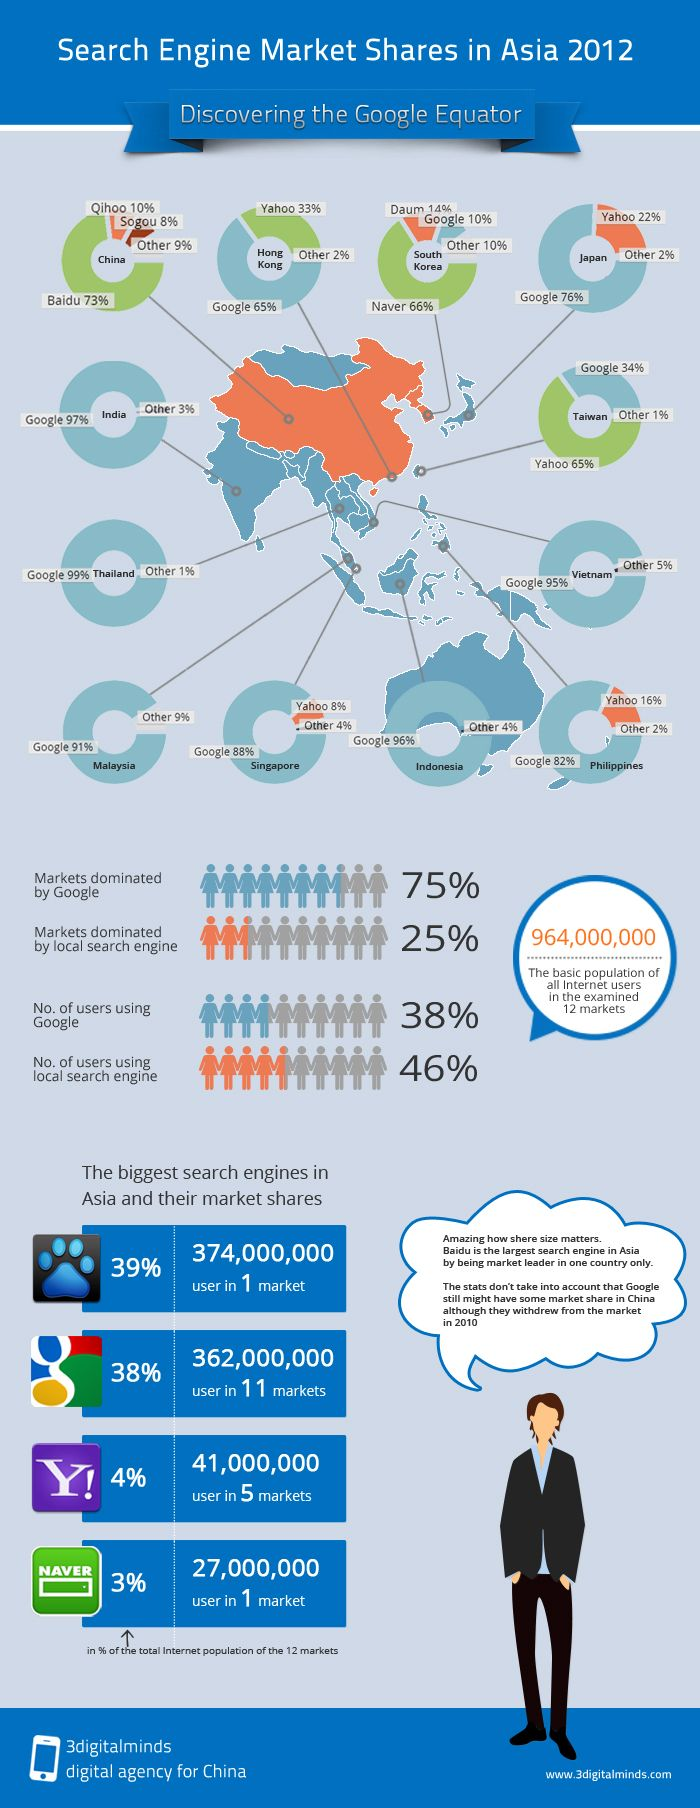 Infographic about search engine market shares in Asia